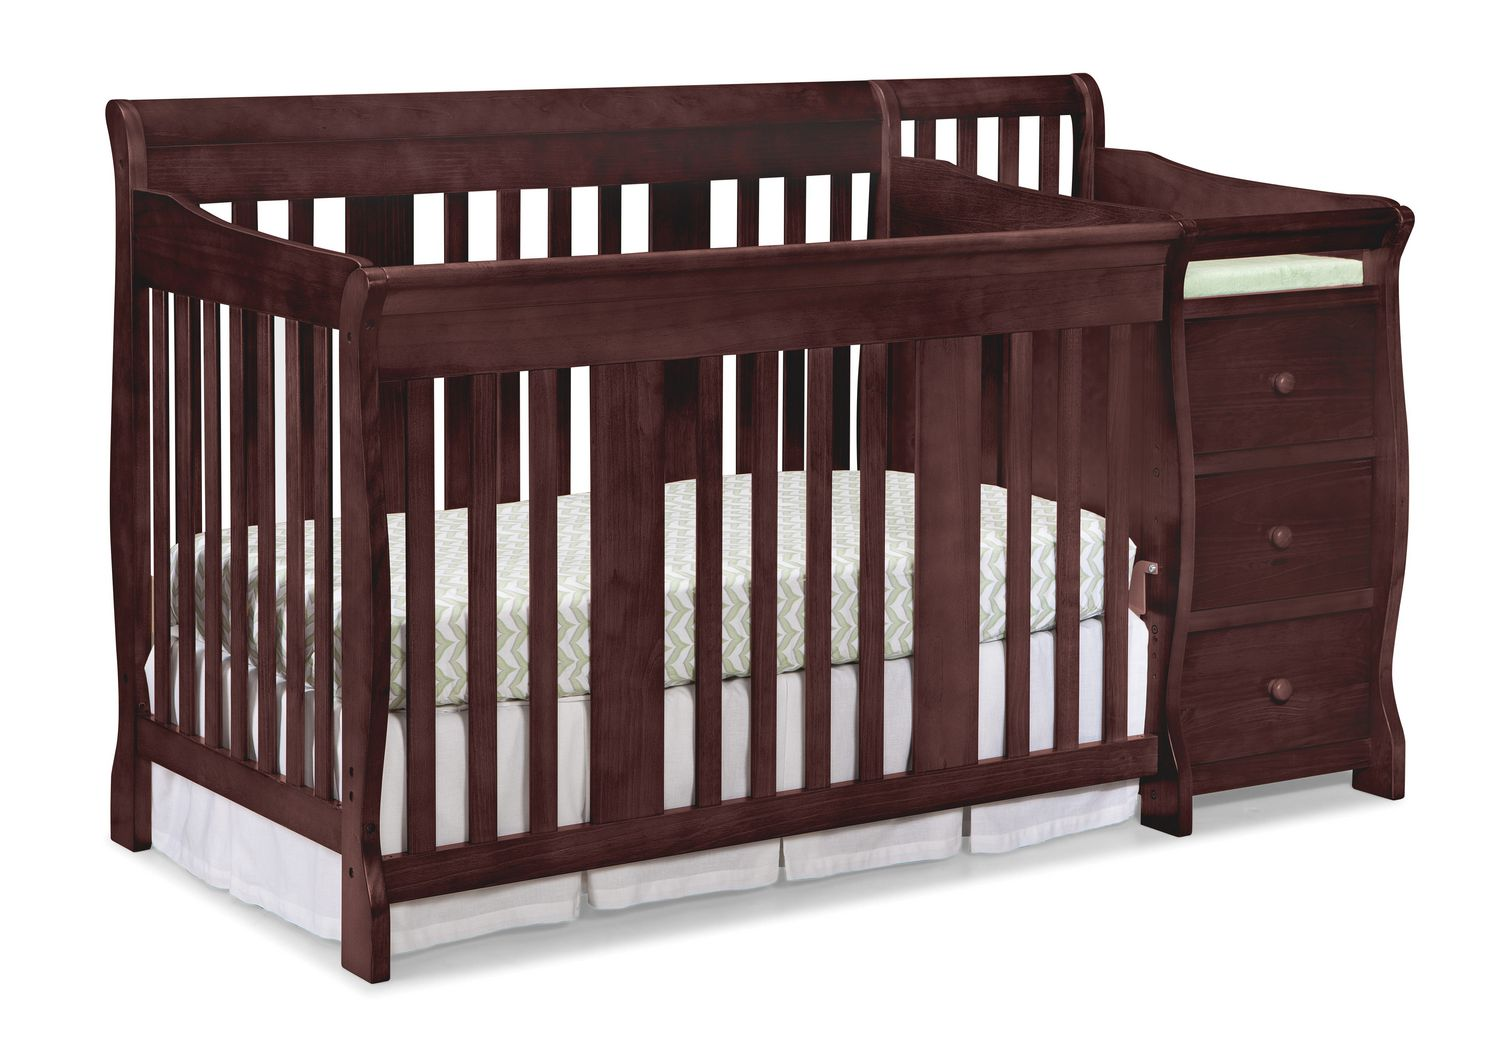 Convertible Cribs | Cheap Cribs | Baby Cribs Cheap Price